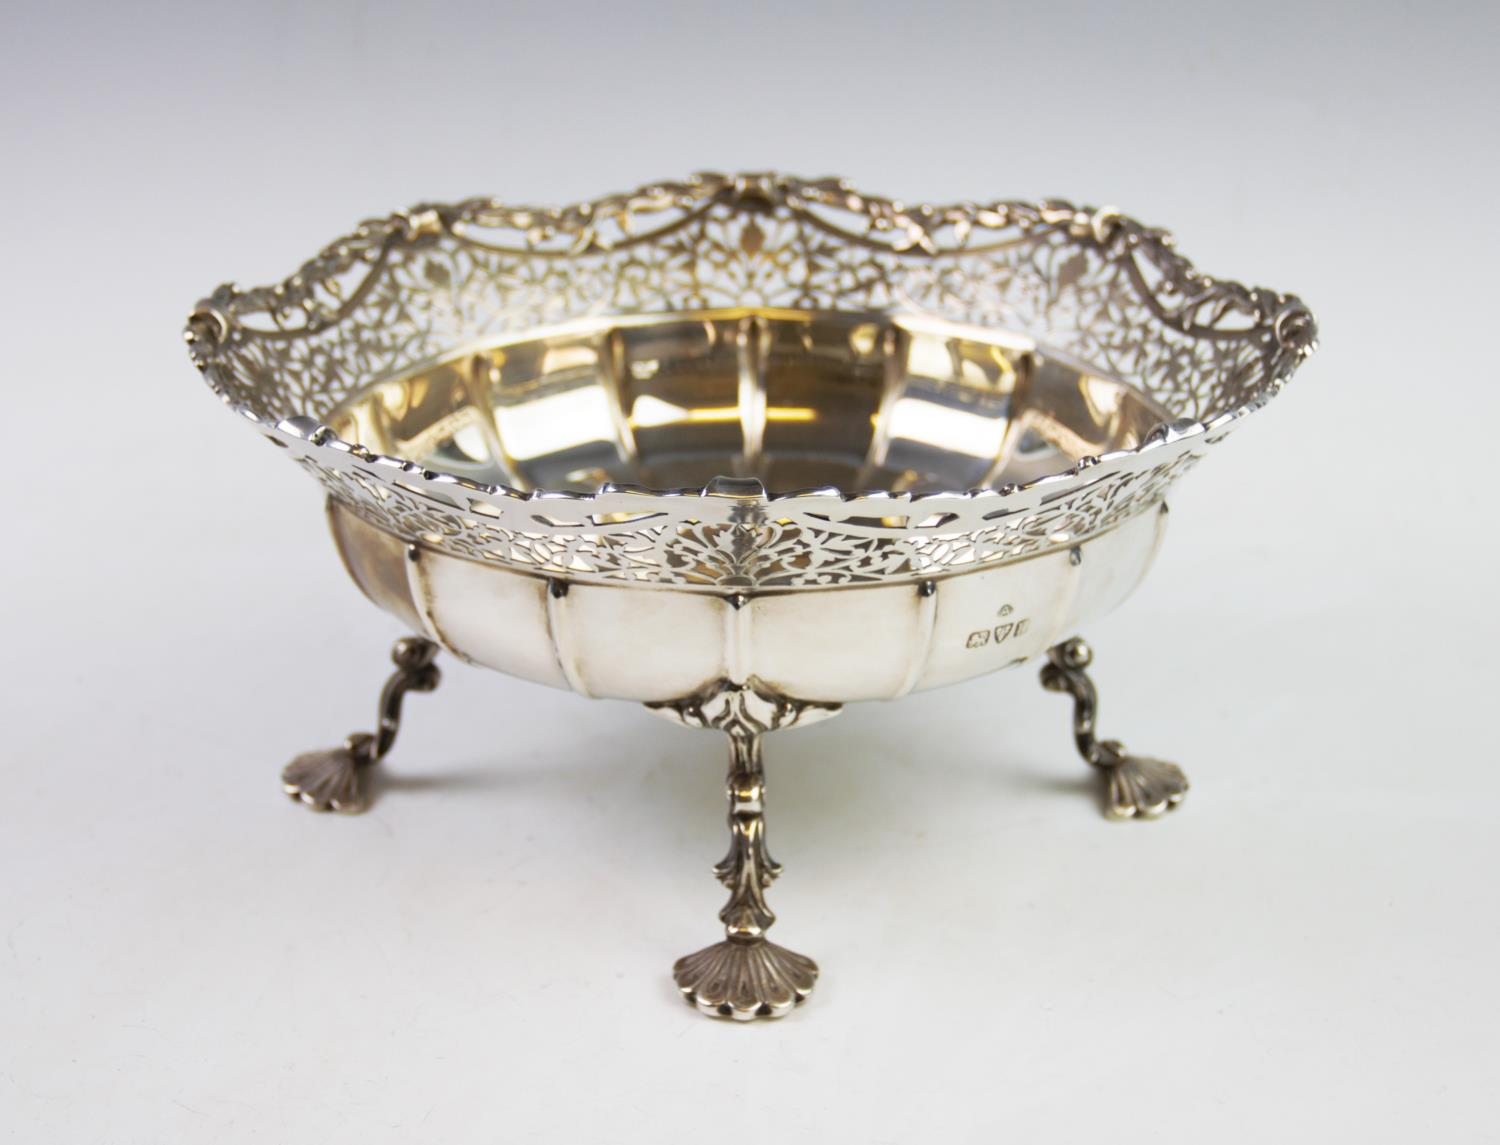 Lot 18 - A George V silver dish, Adie Brothers Ltd, Chester 1935, with cusped and pierced rim, the plain